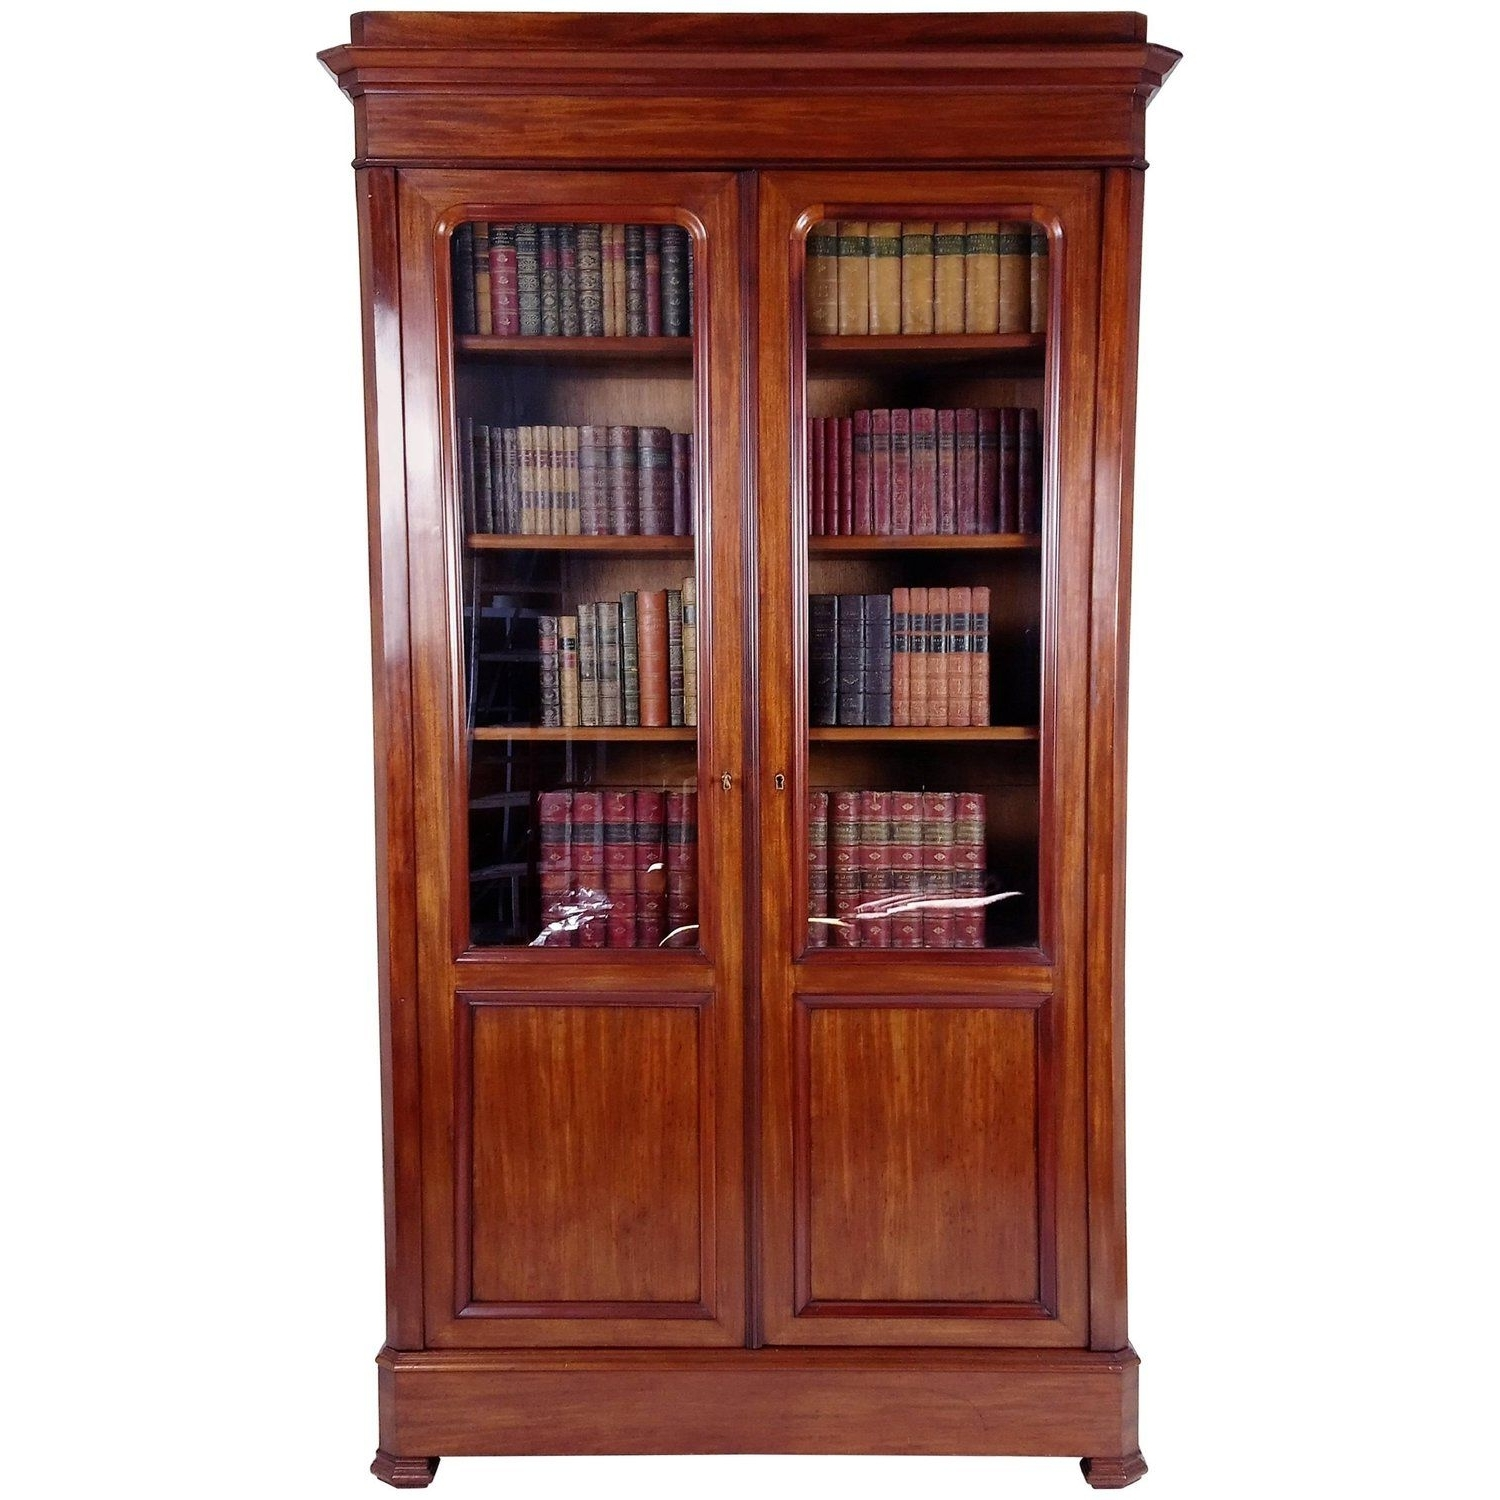 Bookcases Flat Pack With Well Known 19Th C. French Mahogany Library Flat Pack Bookcase (C (View 5 of 15)